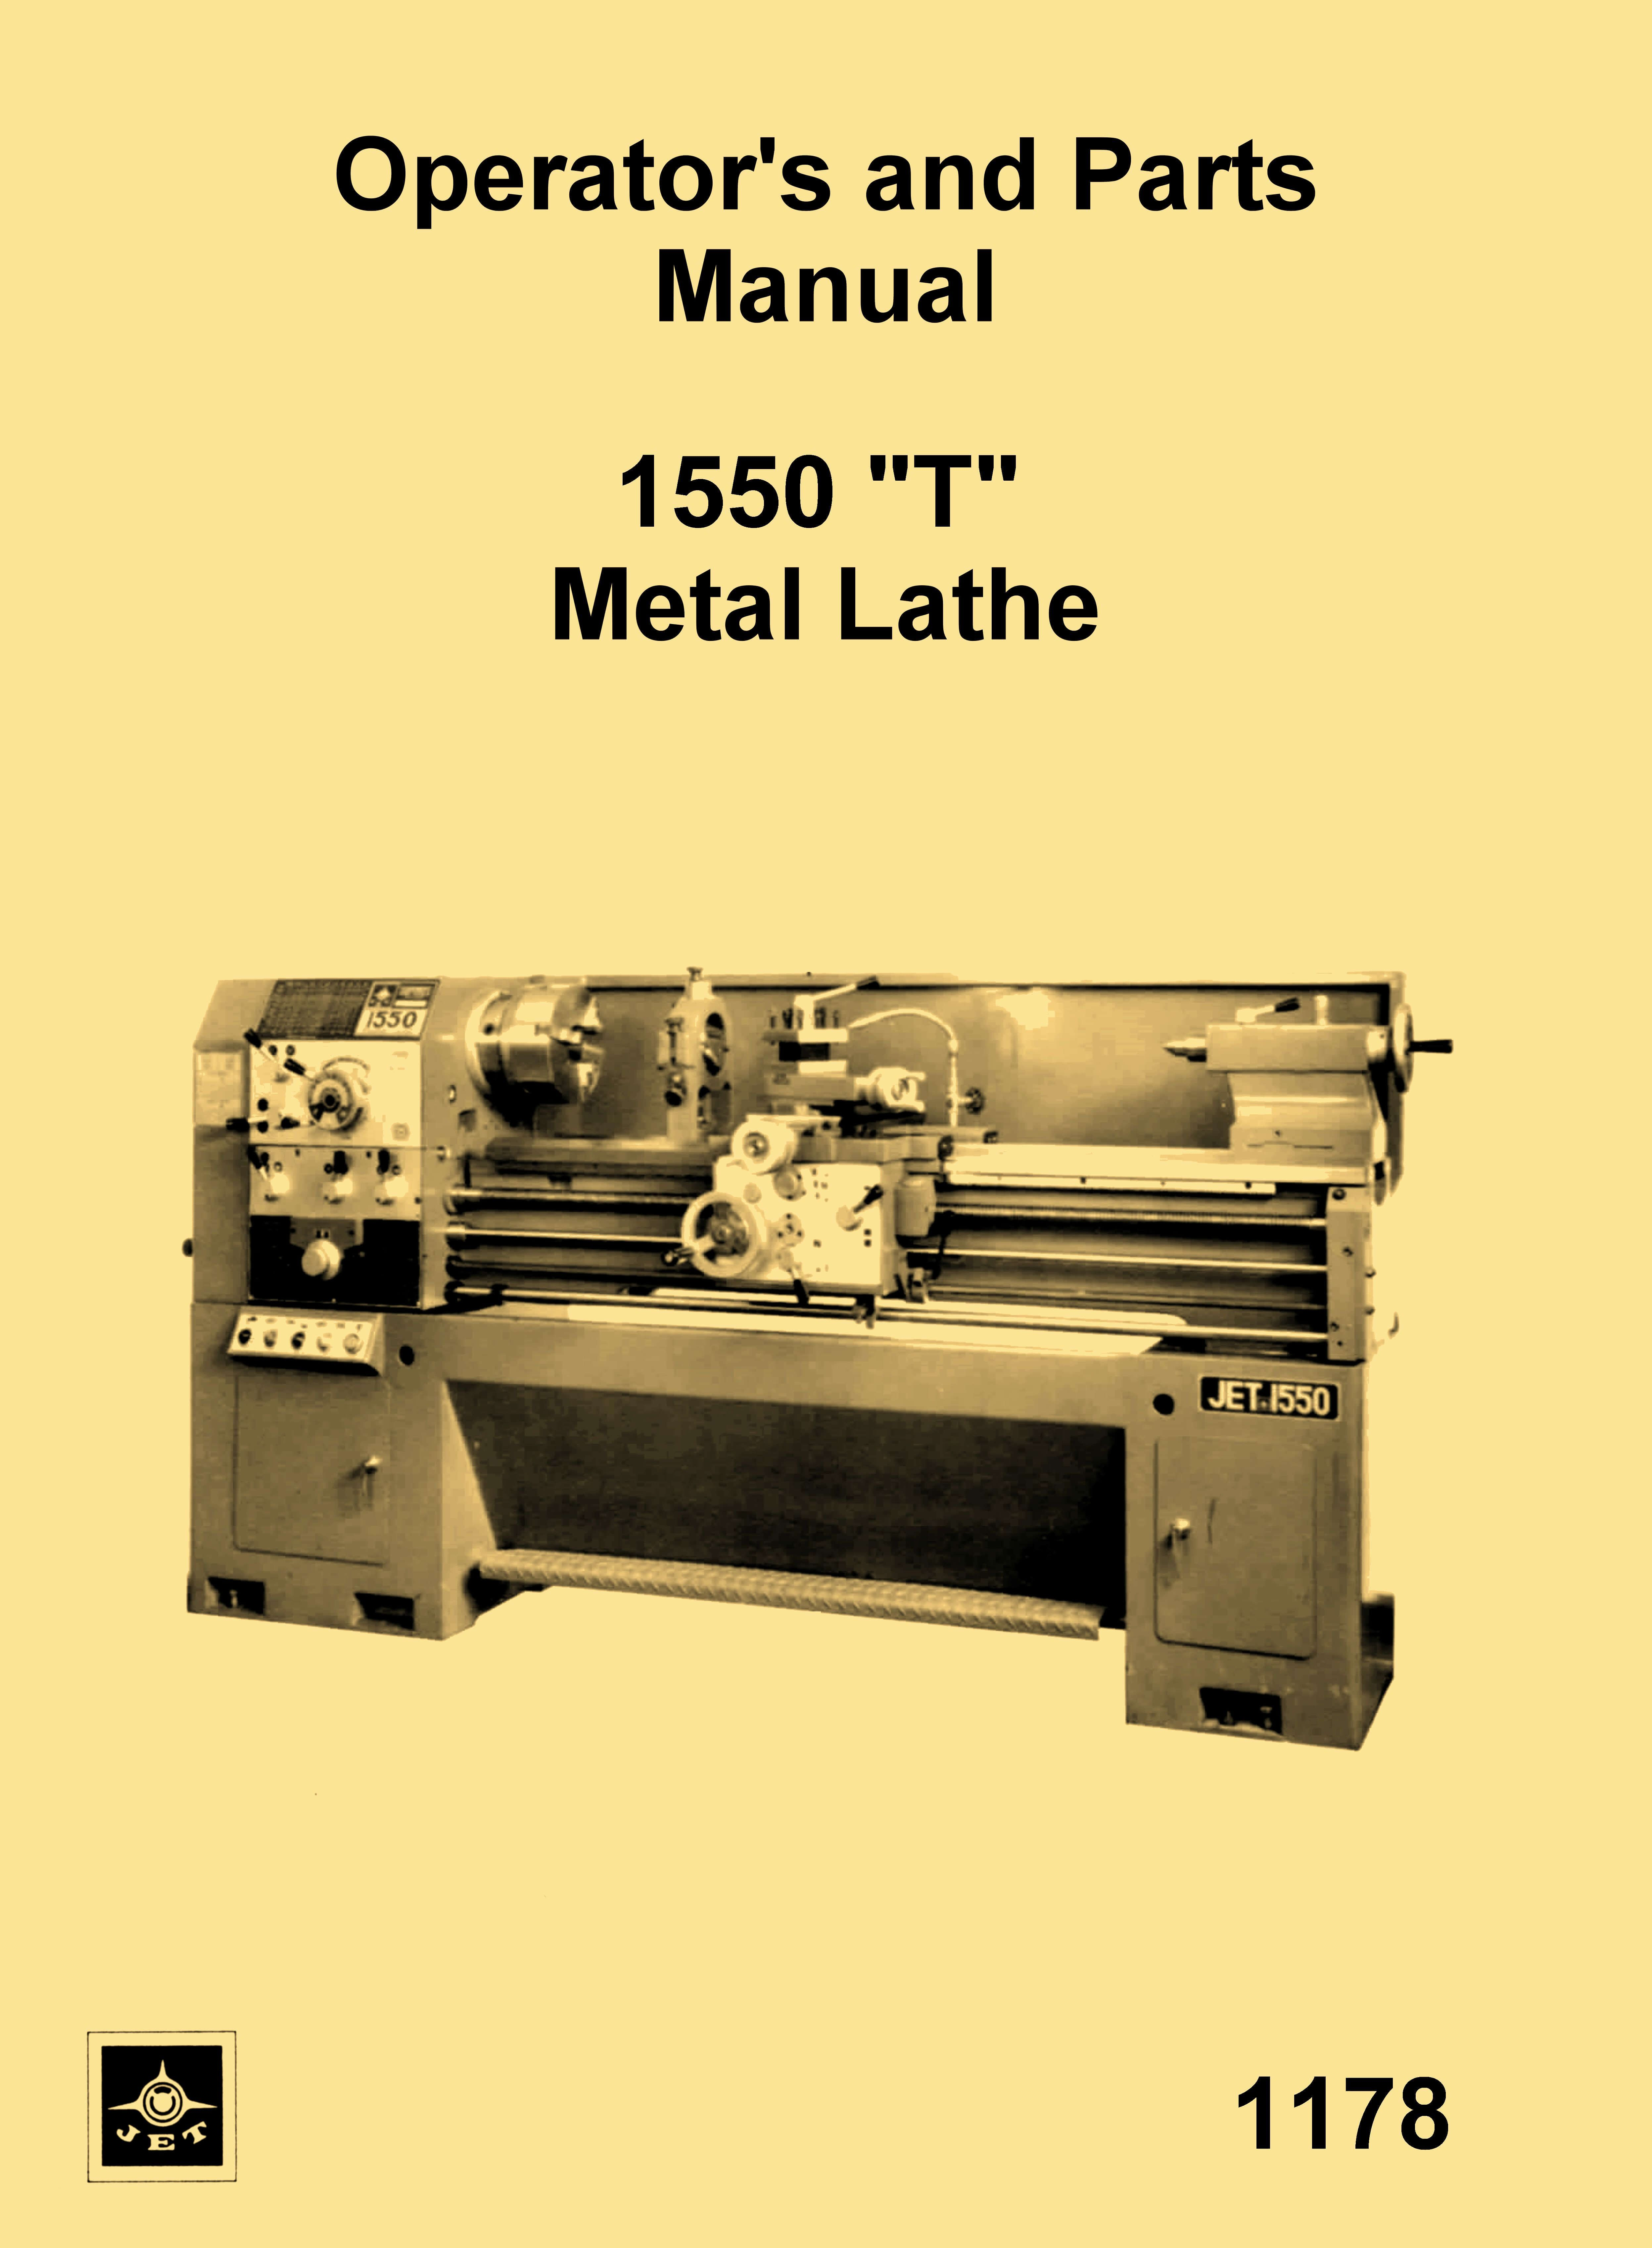 jet enco msc asian 1550 t metal lathe instructions amp parts manual [ 4991 x 6791 Pixel ]